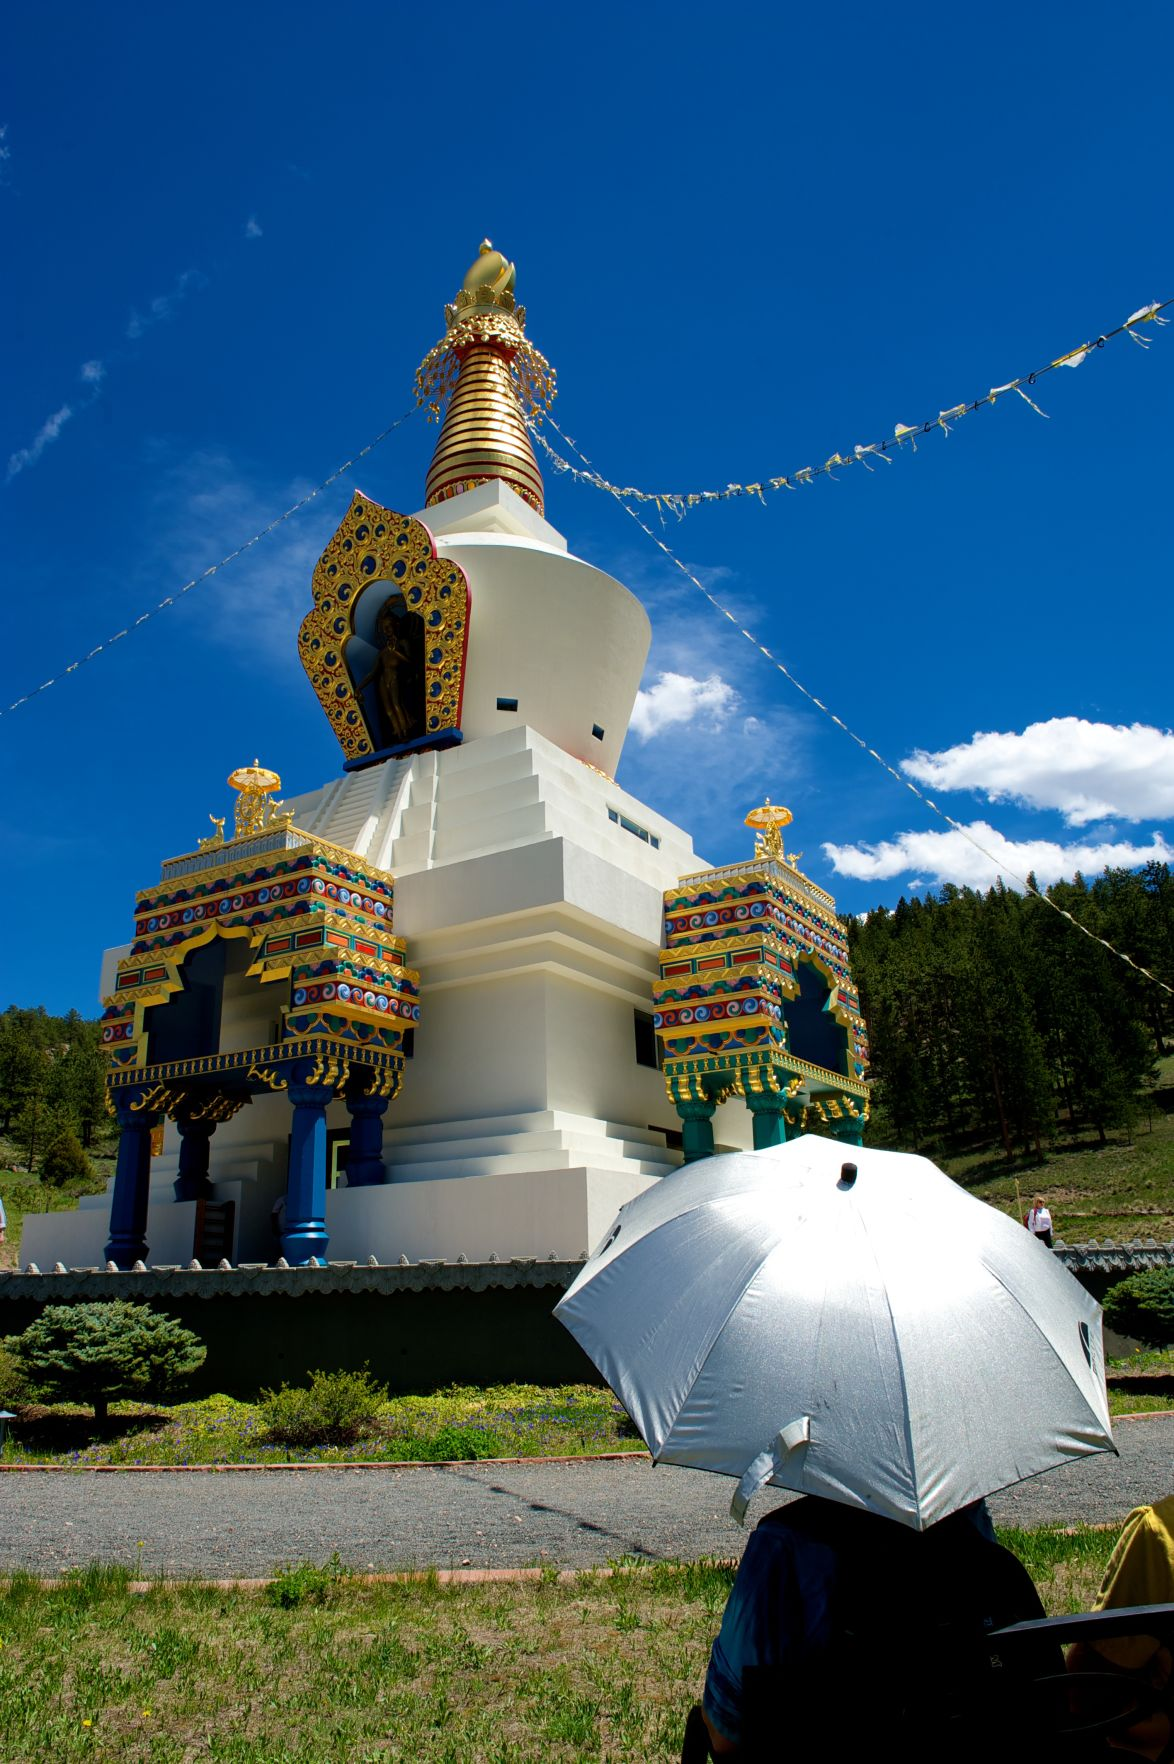 Shambhala Mountain Center home of peace, study and the largest stupa in North America